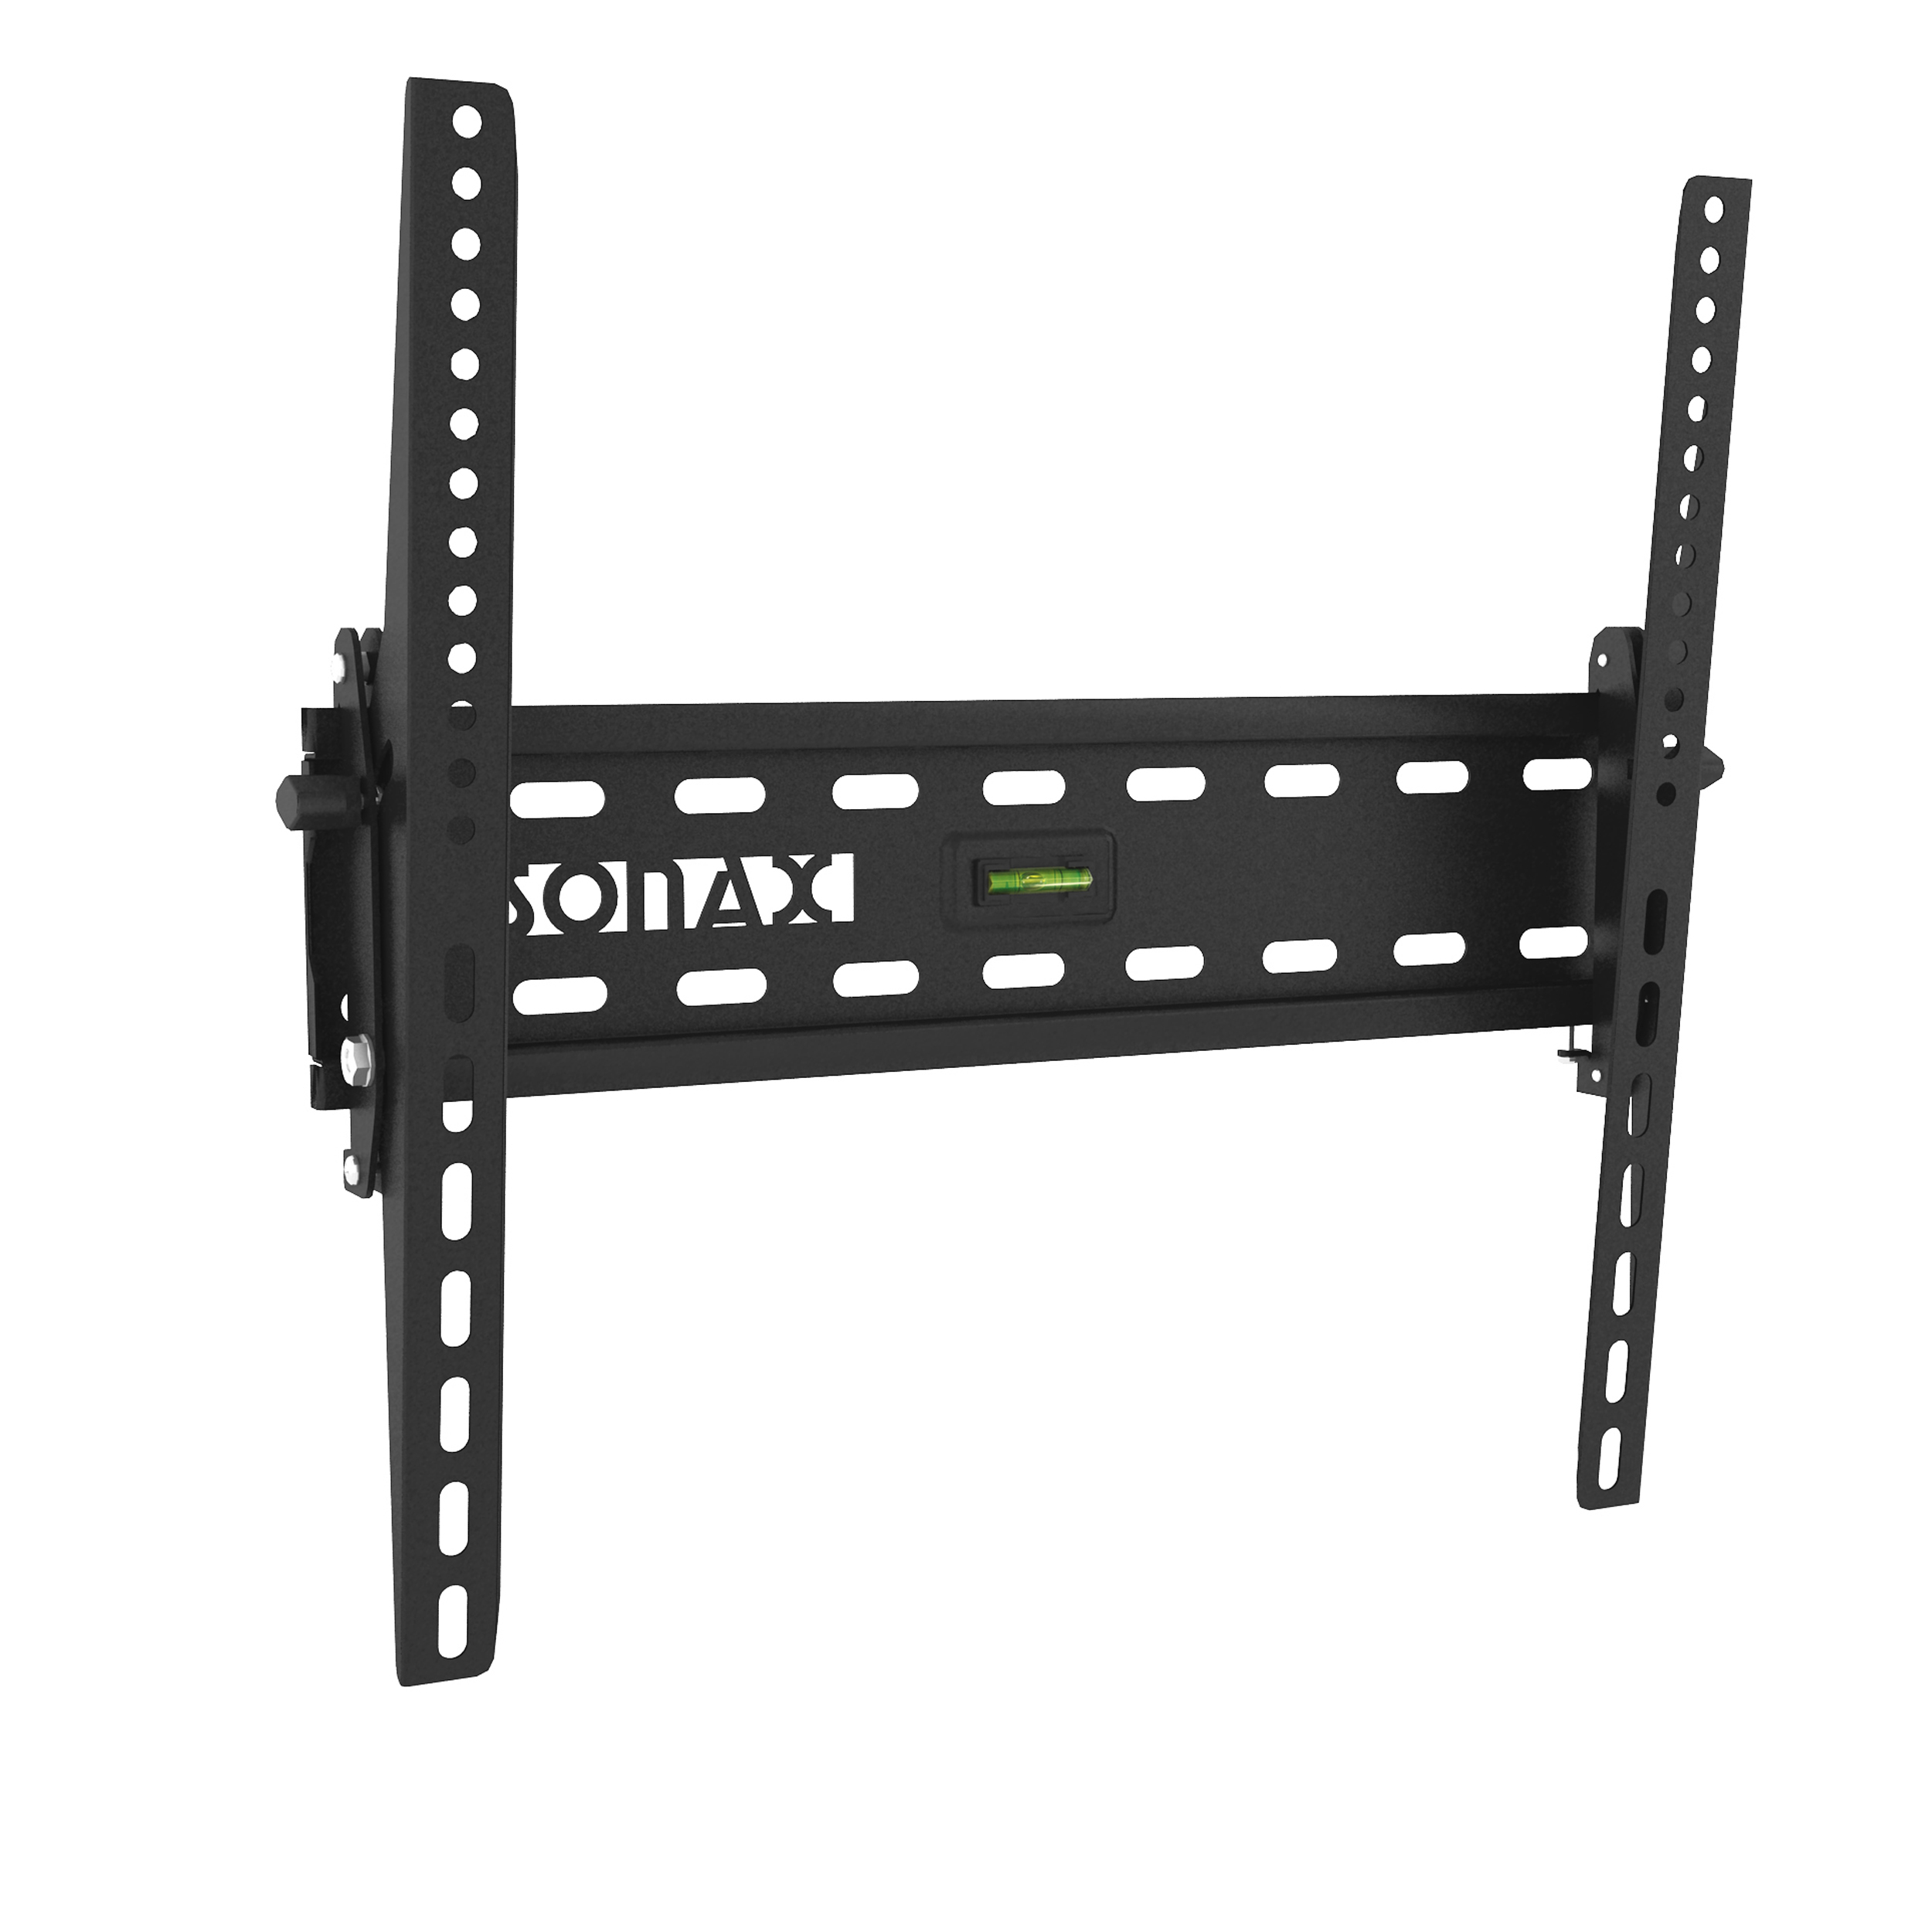 "Sonax Tilting Flat Panel Wall Mount for 32"" - 55"" TVs"